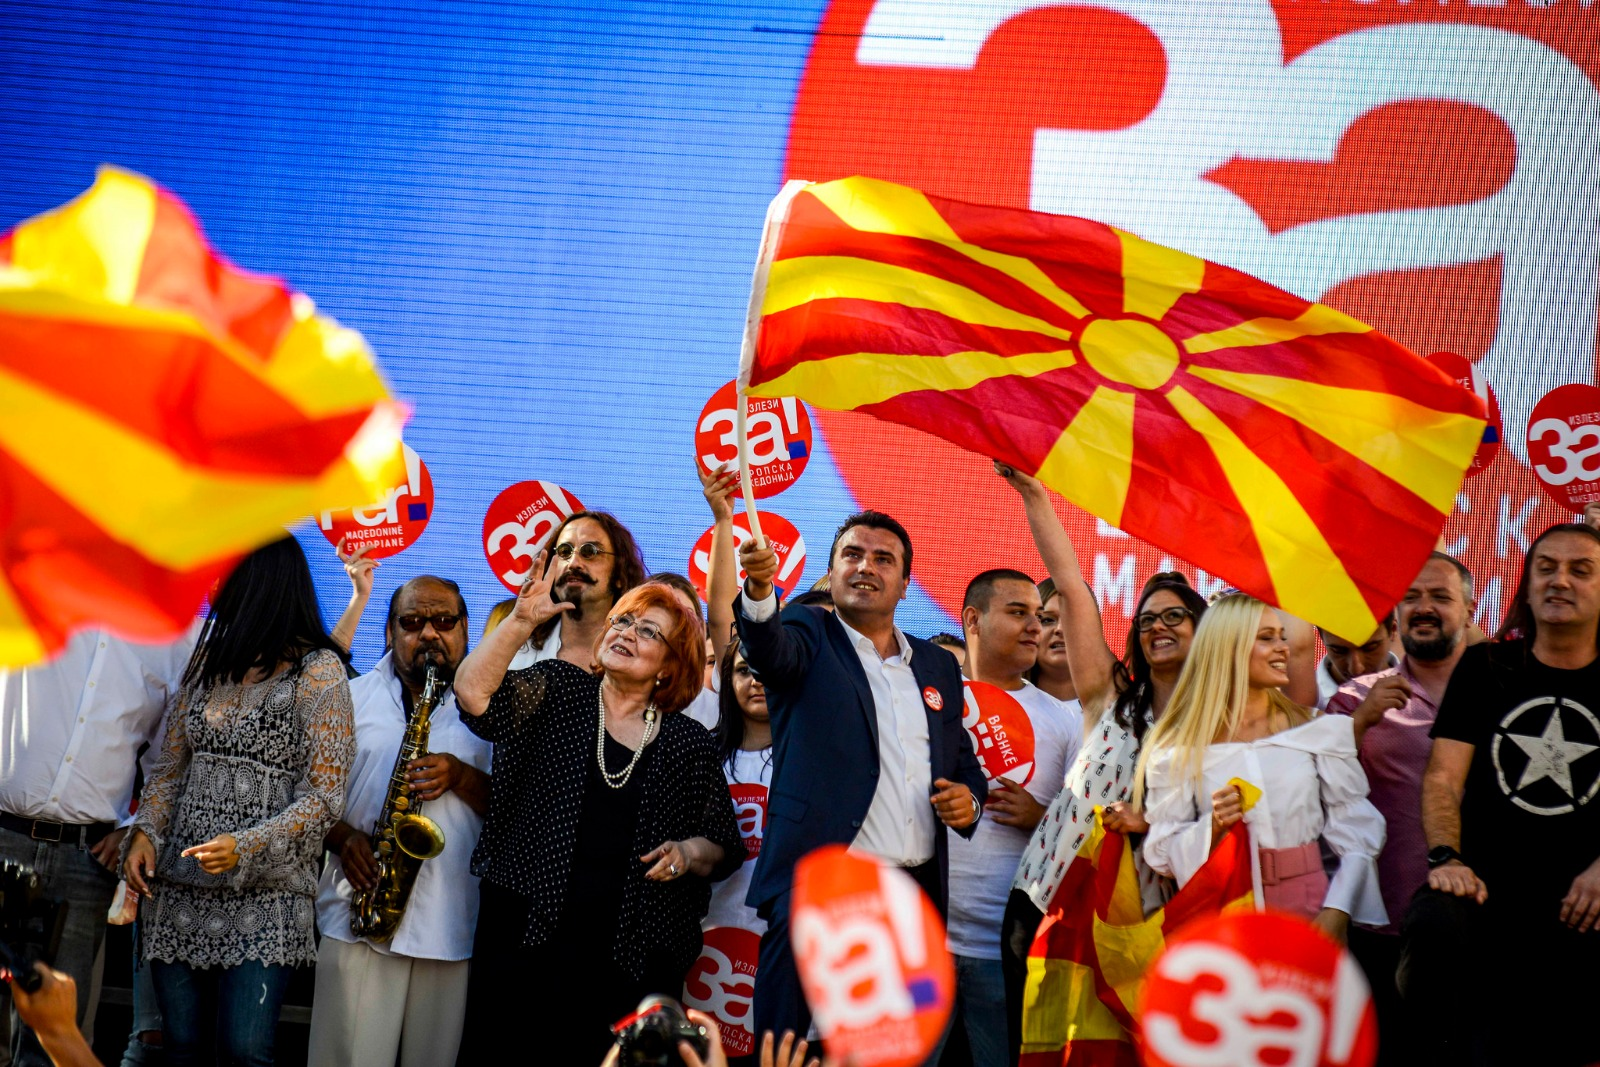 FYROM: Campaign for the referendum is coming to an end